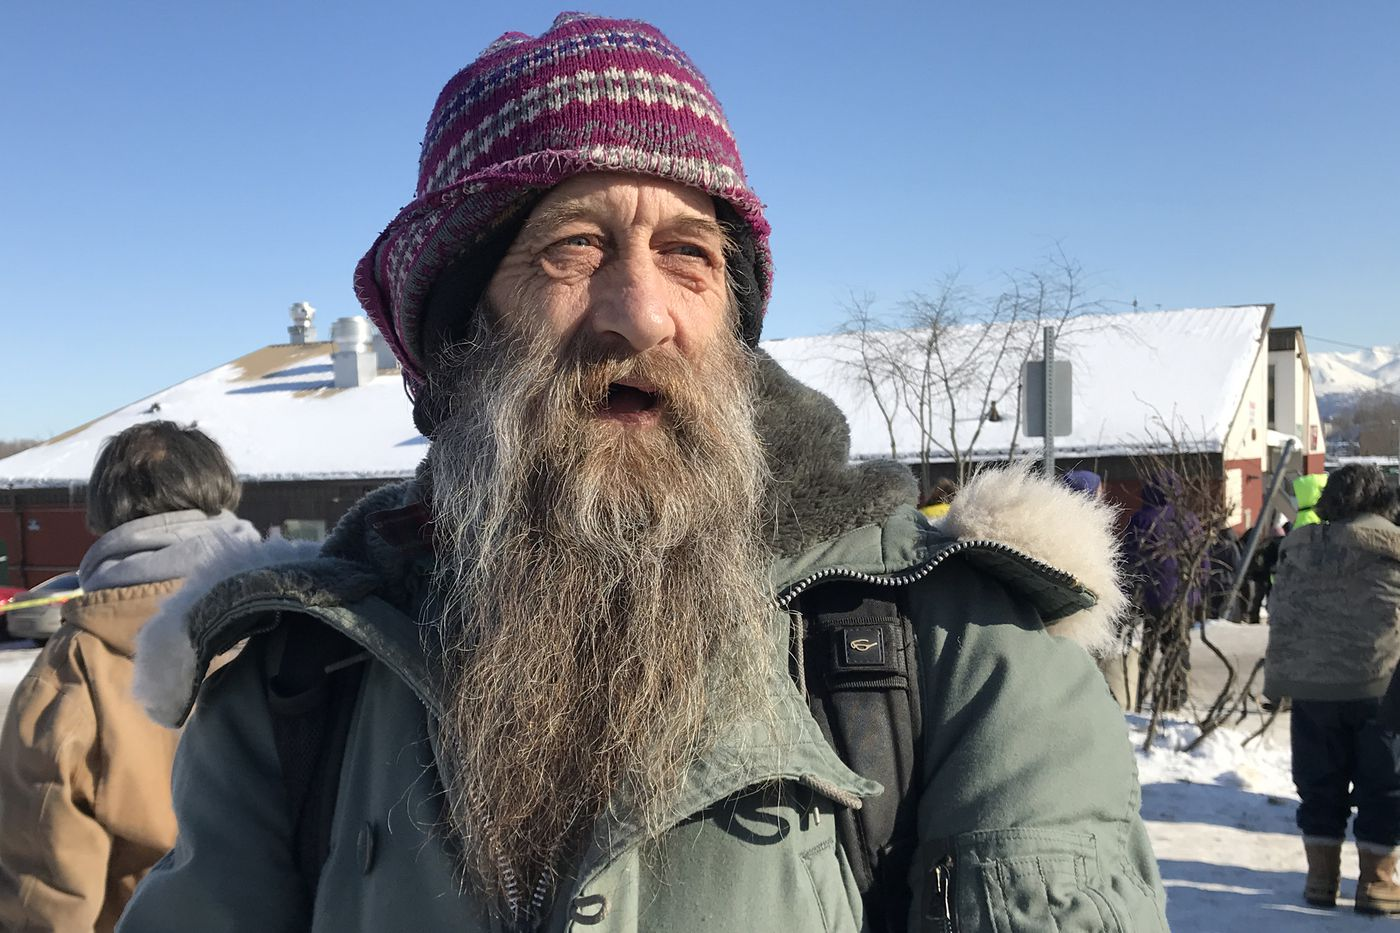 A man that goes by the name Rabbit said, 'It's mind over matter ', when asked about the coronavirus near Bean's Cafe in Anchorage on Wednesday, March 11, 2020. (Bill Roth / ADN)